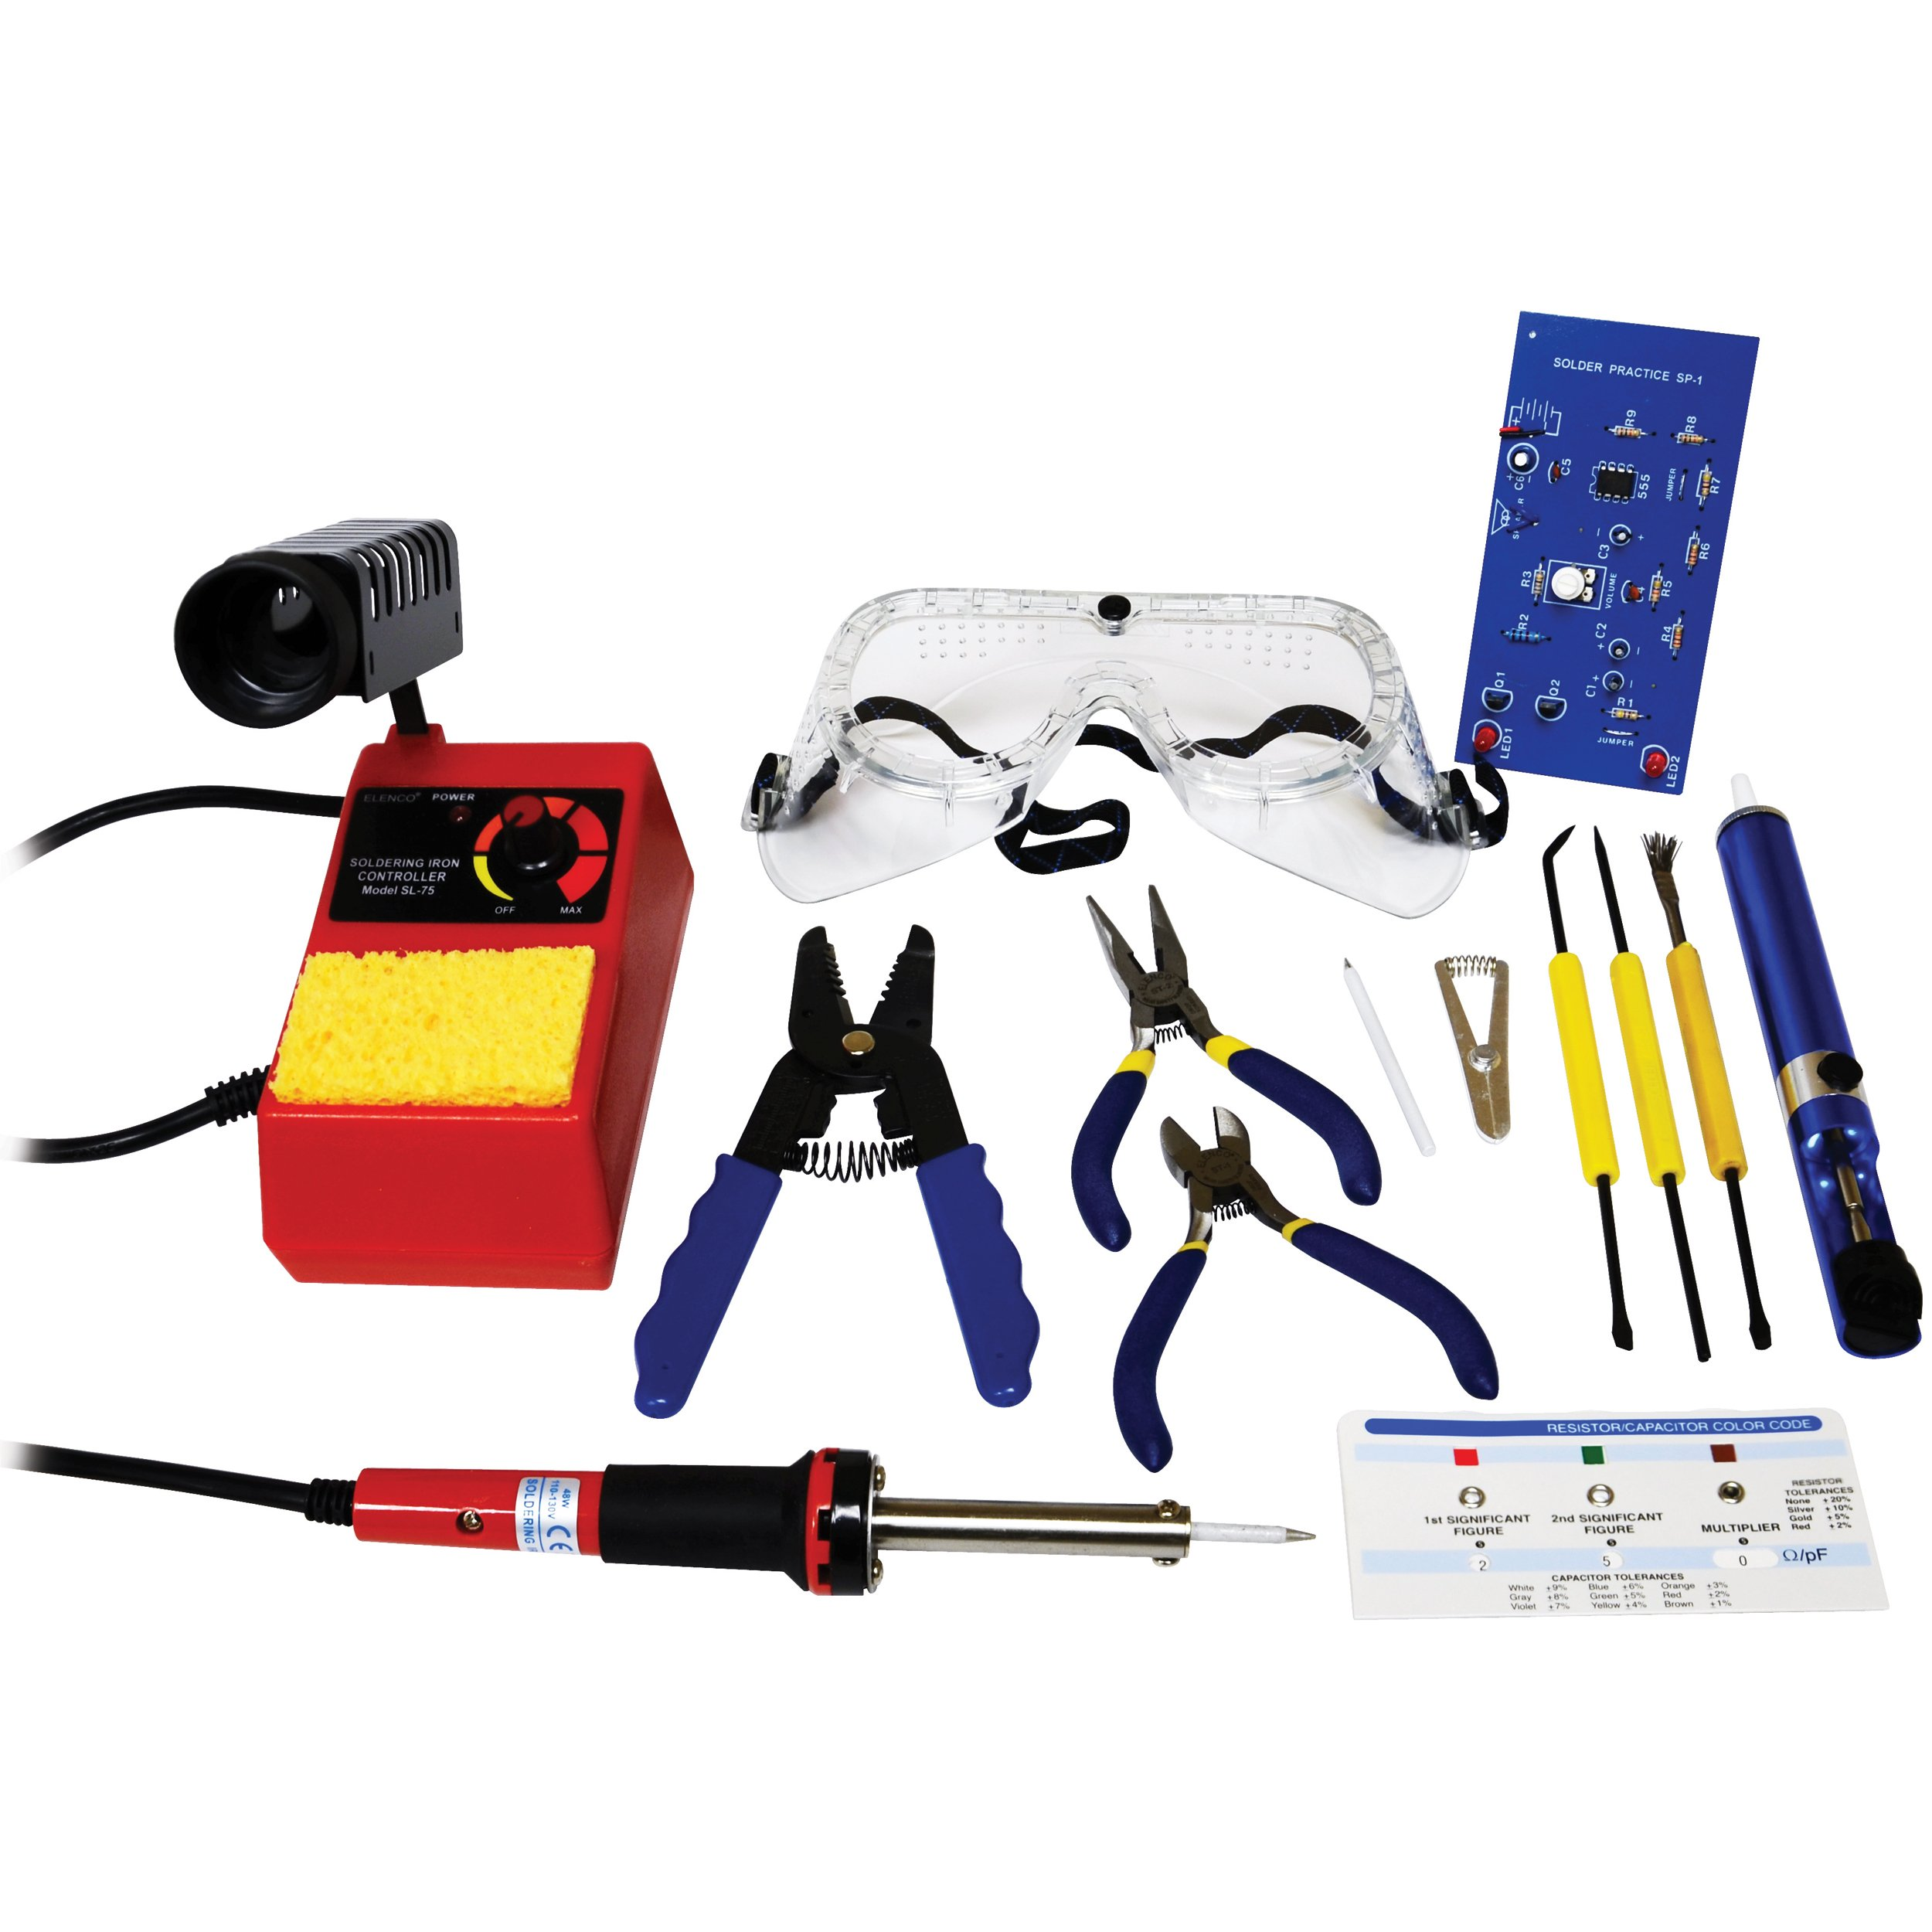 Elenco - Fundamentals of Soldering Kit with Tools